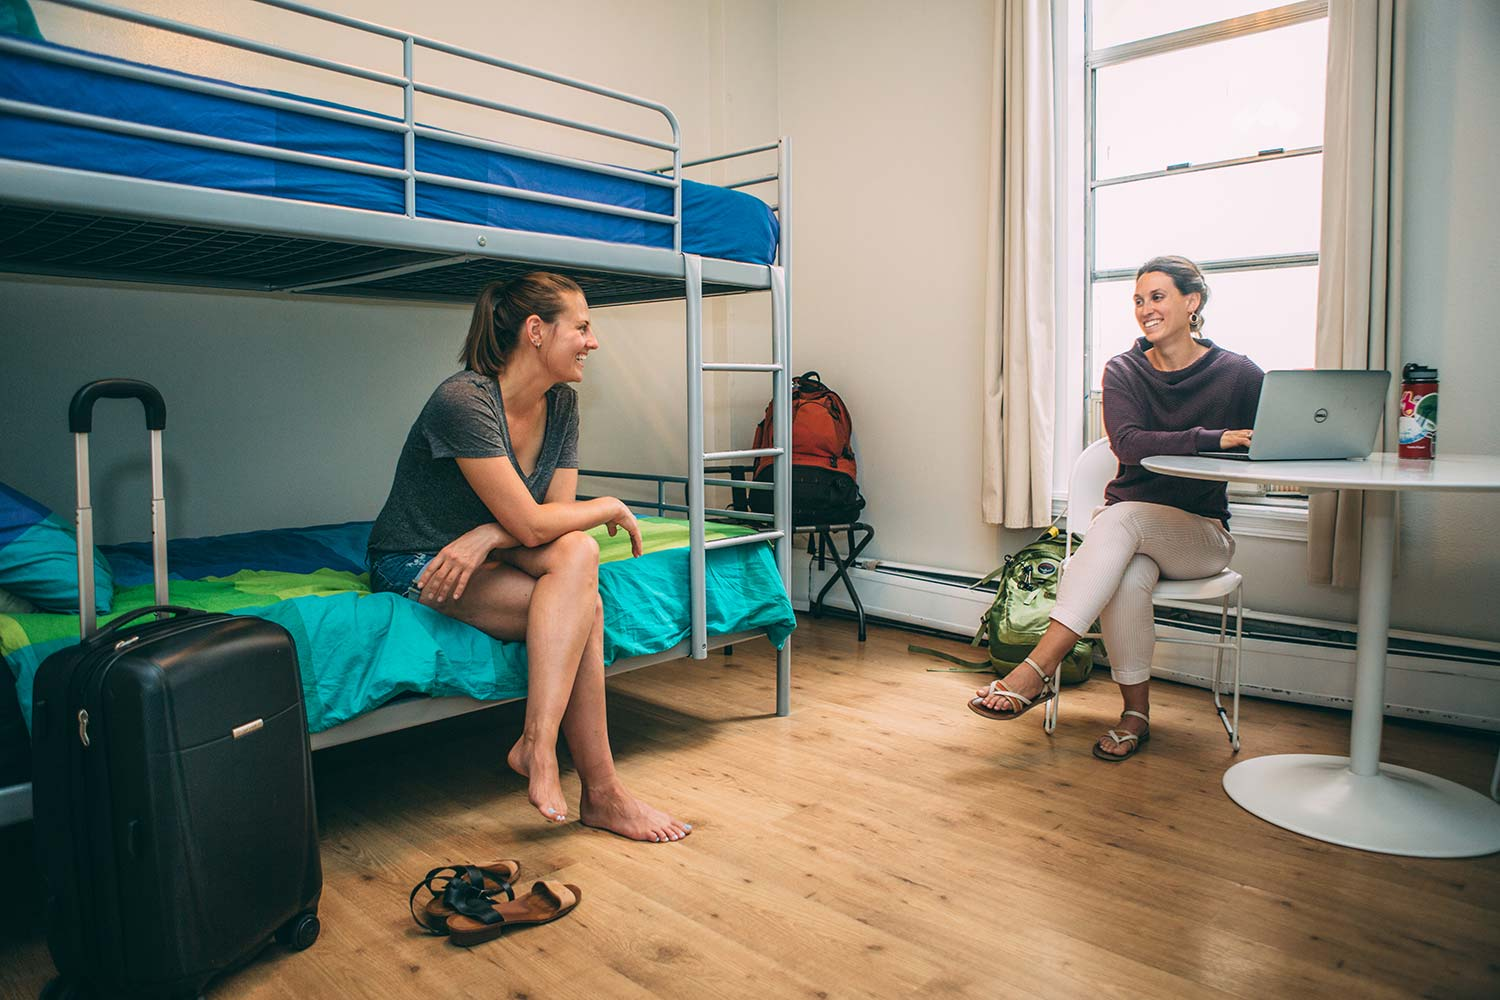 Two women talking in a room with two bunk beds.